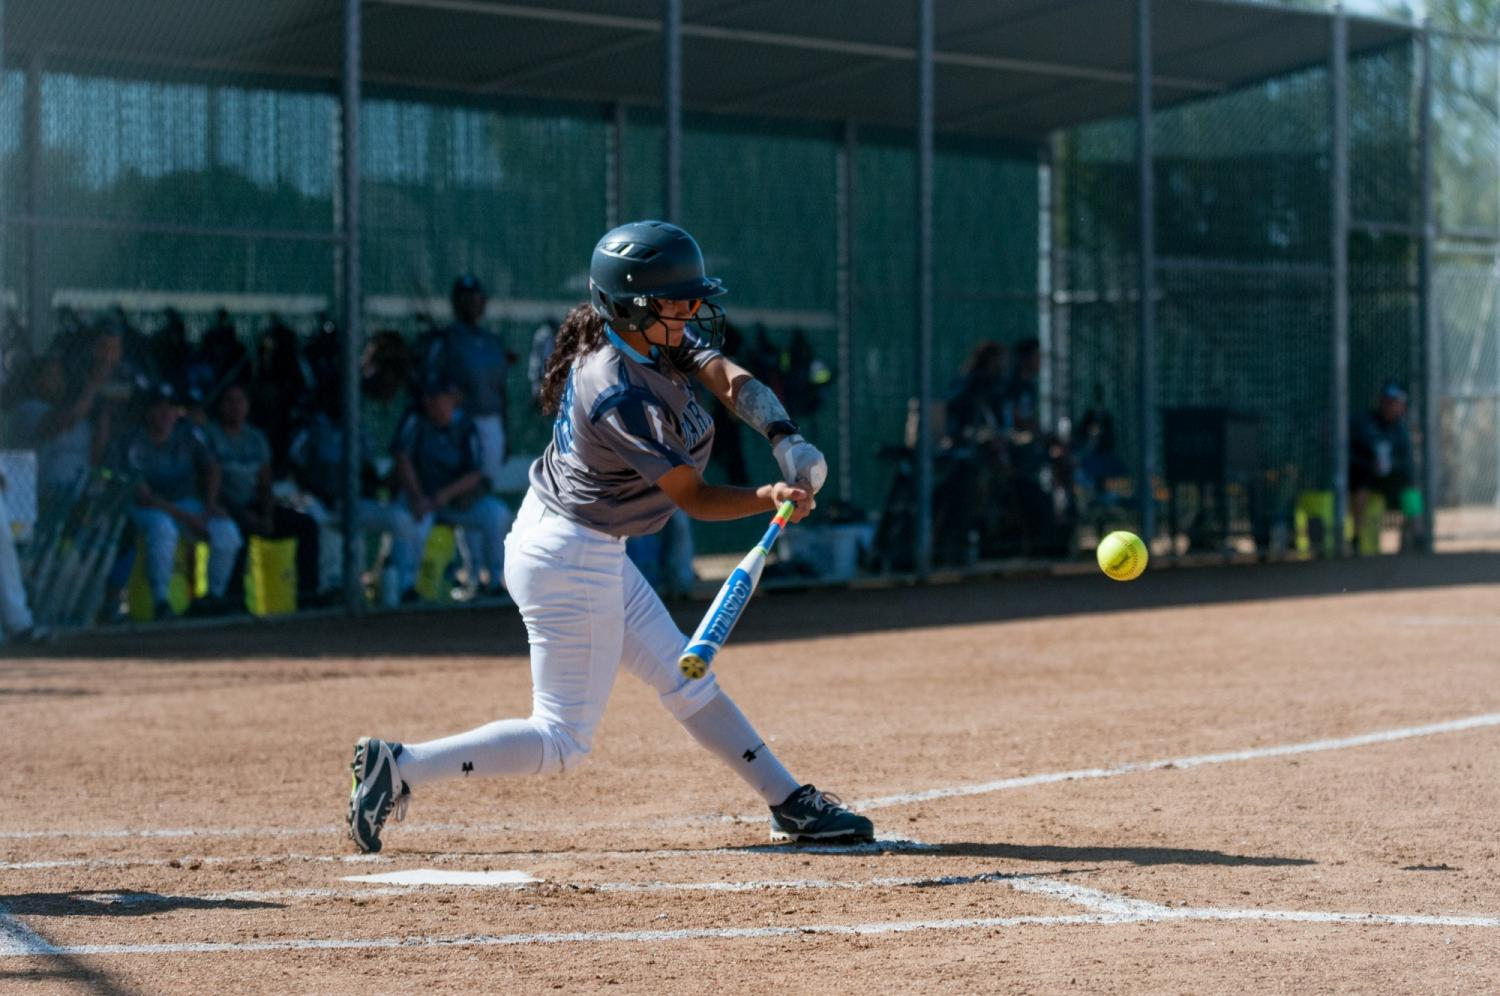 El Camino freshman utility player Karla Calderon swings at a pitch against L.A. Harbor College on Tuesday, March 28 at the EC softball field. Photo credit: Osvaldo Deras